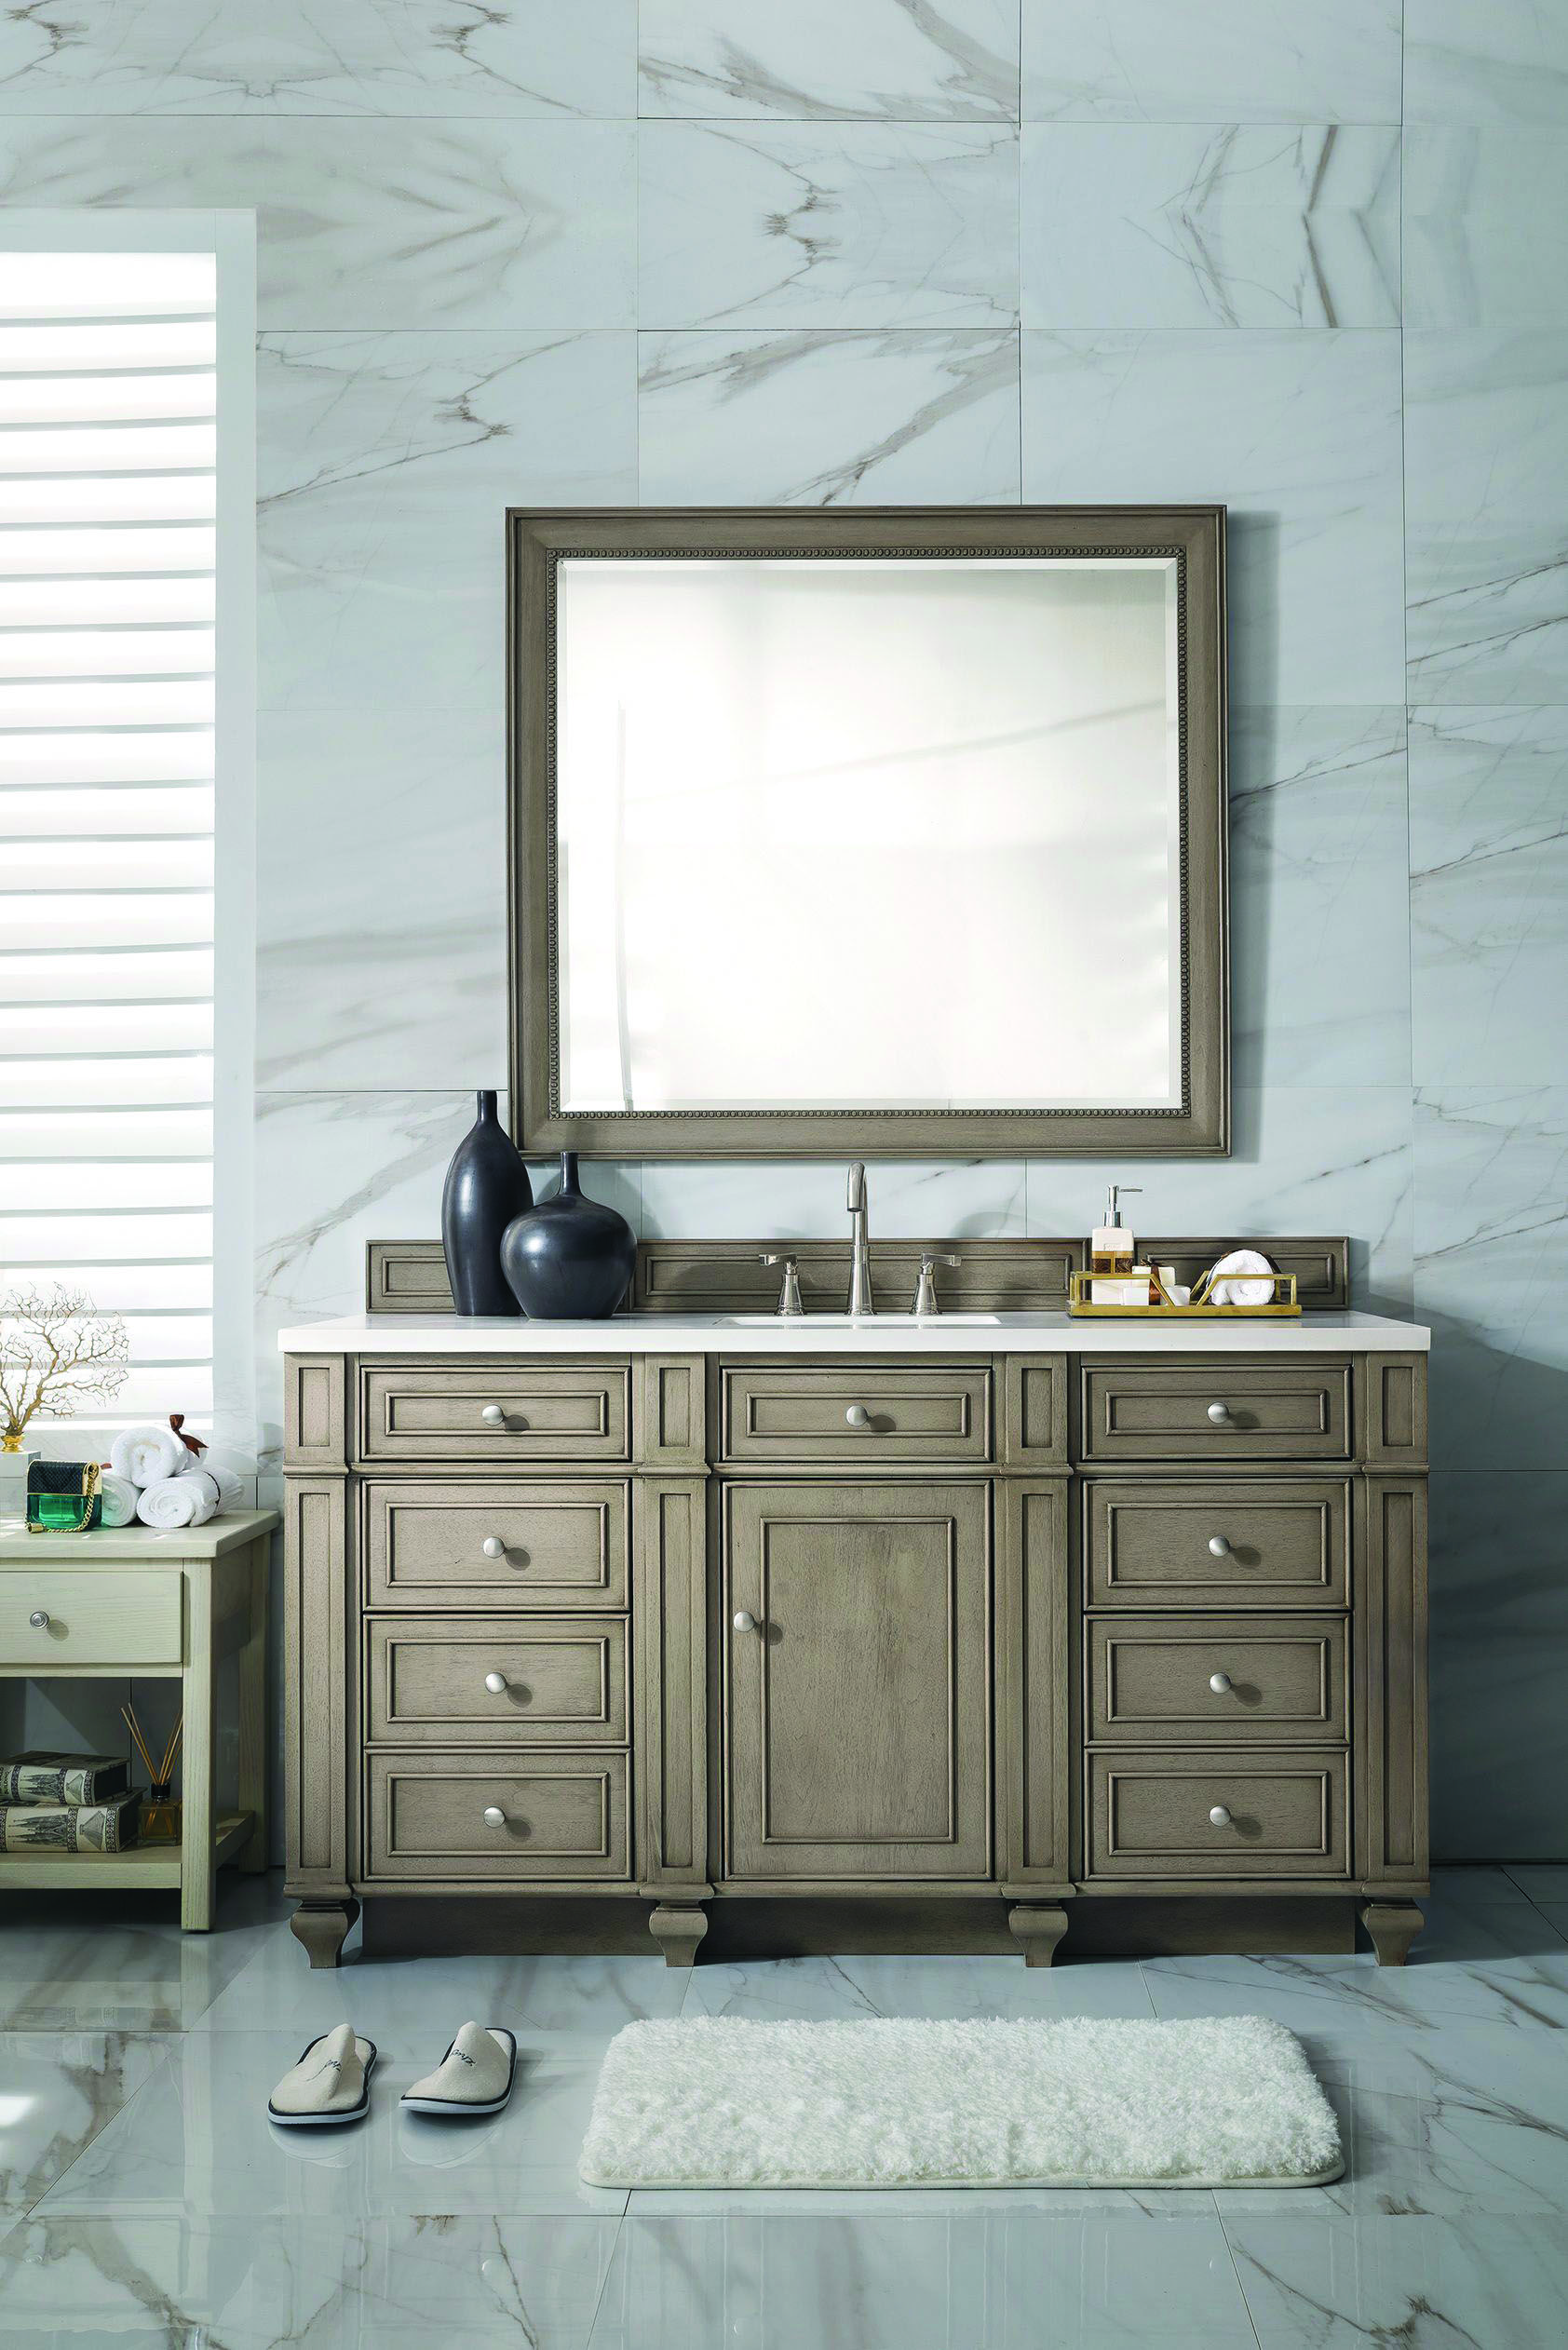 7 Best Washroom Narcissisms And Cabinets With Images Single